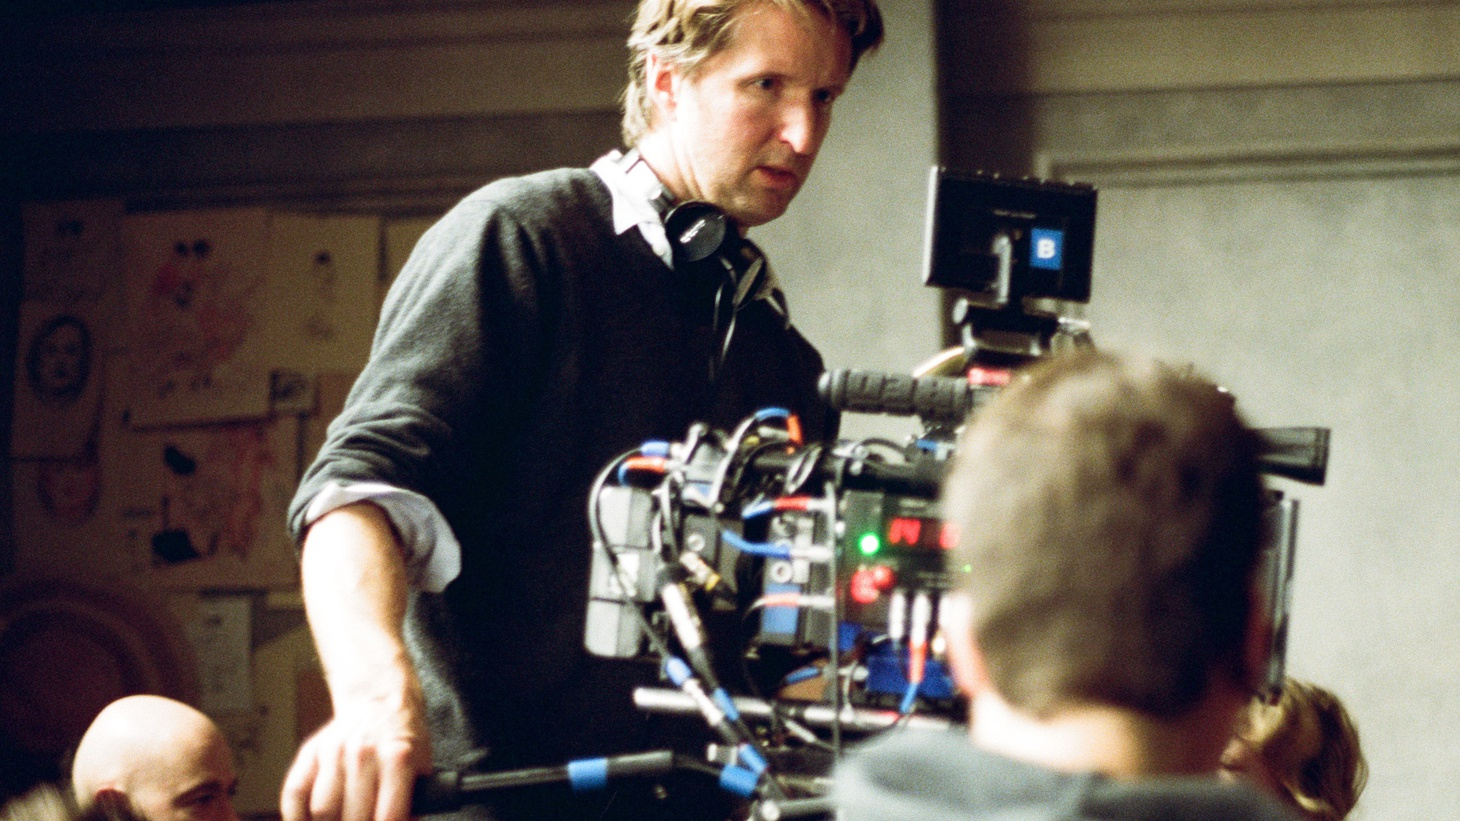 EXCLUSIVE PODCAST: Elvis Mitchell in conversation with The Danish Girl director Tom Hooper, recorded live as part of the Film Independent at LACMA. program.